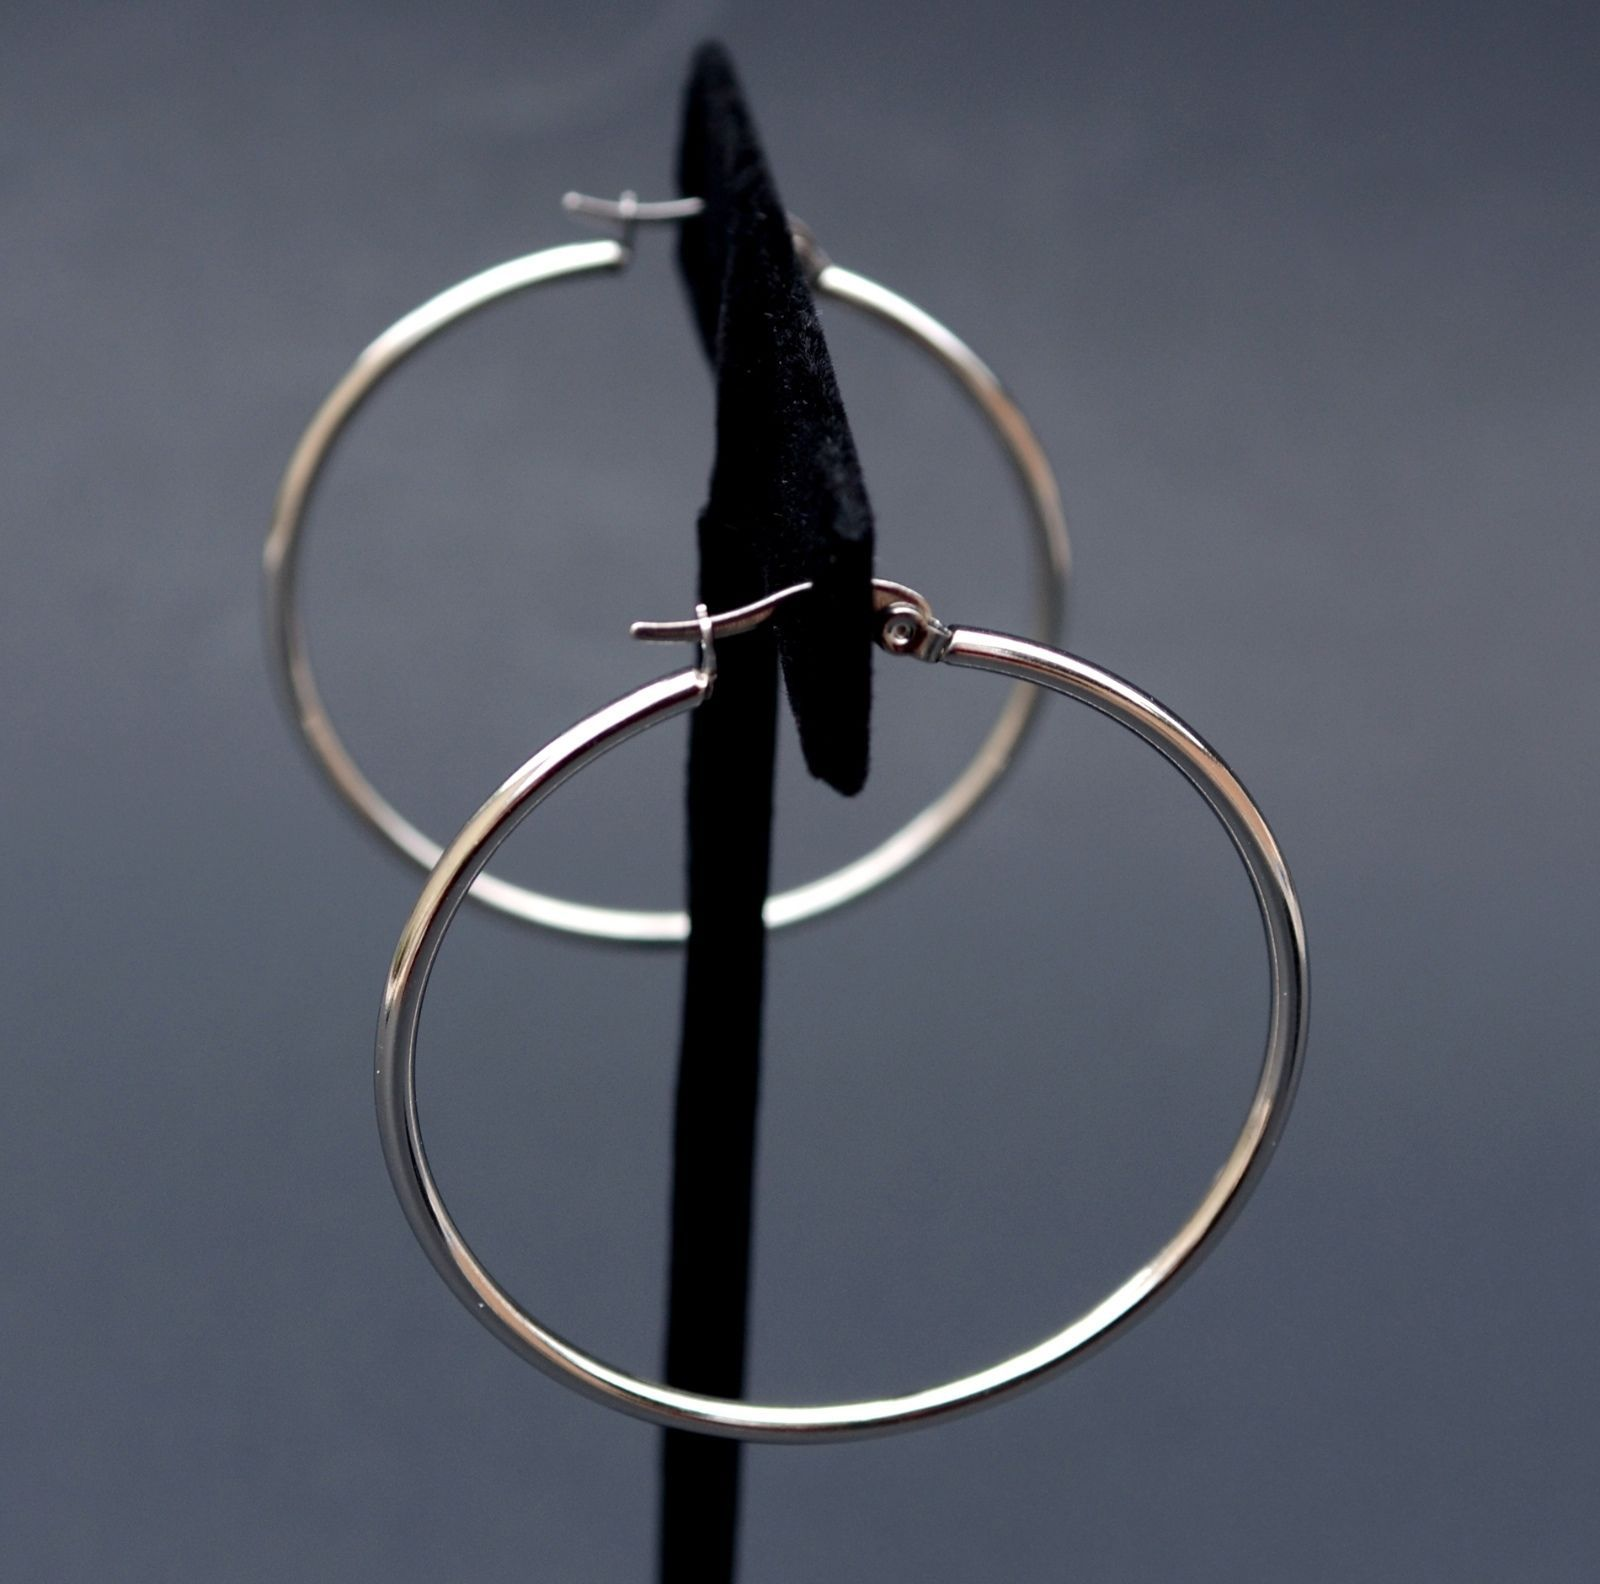 Silver Hoop Earrings Stainless Steel Round 1 3 4 Inch Diameter Hypoallergenic Ebay